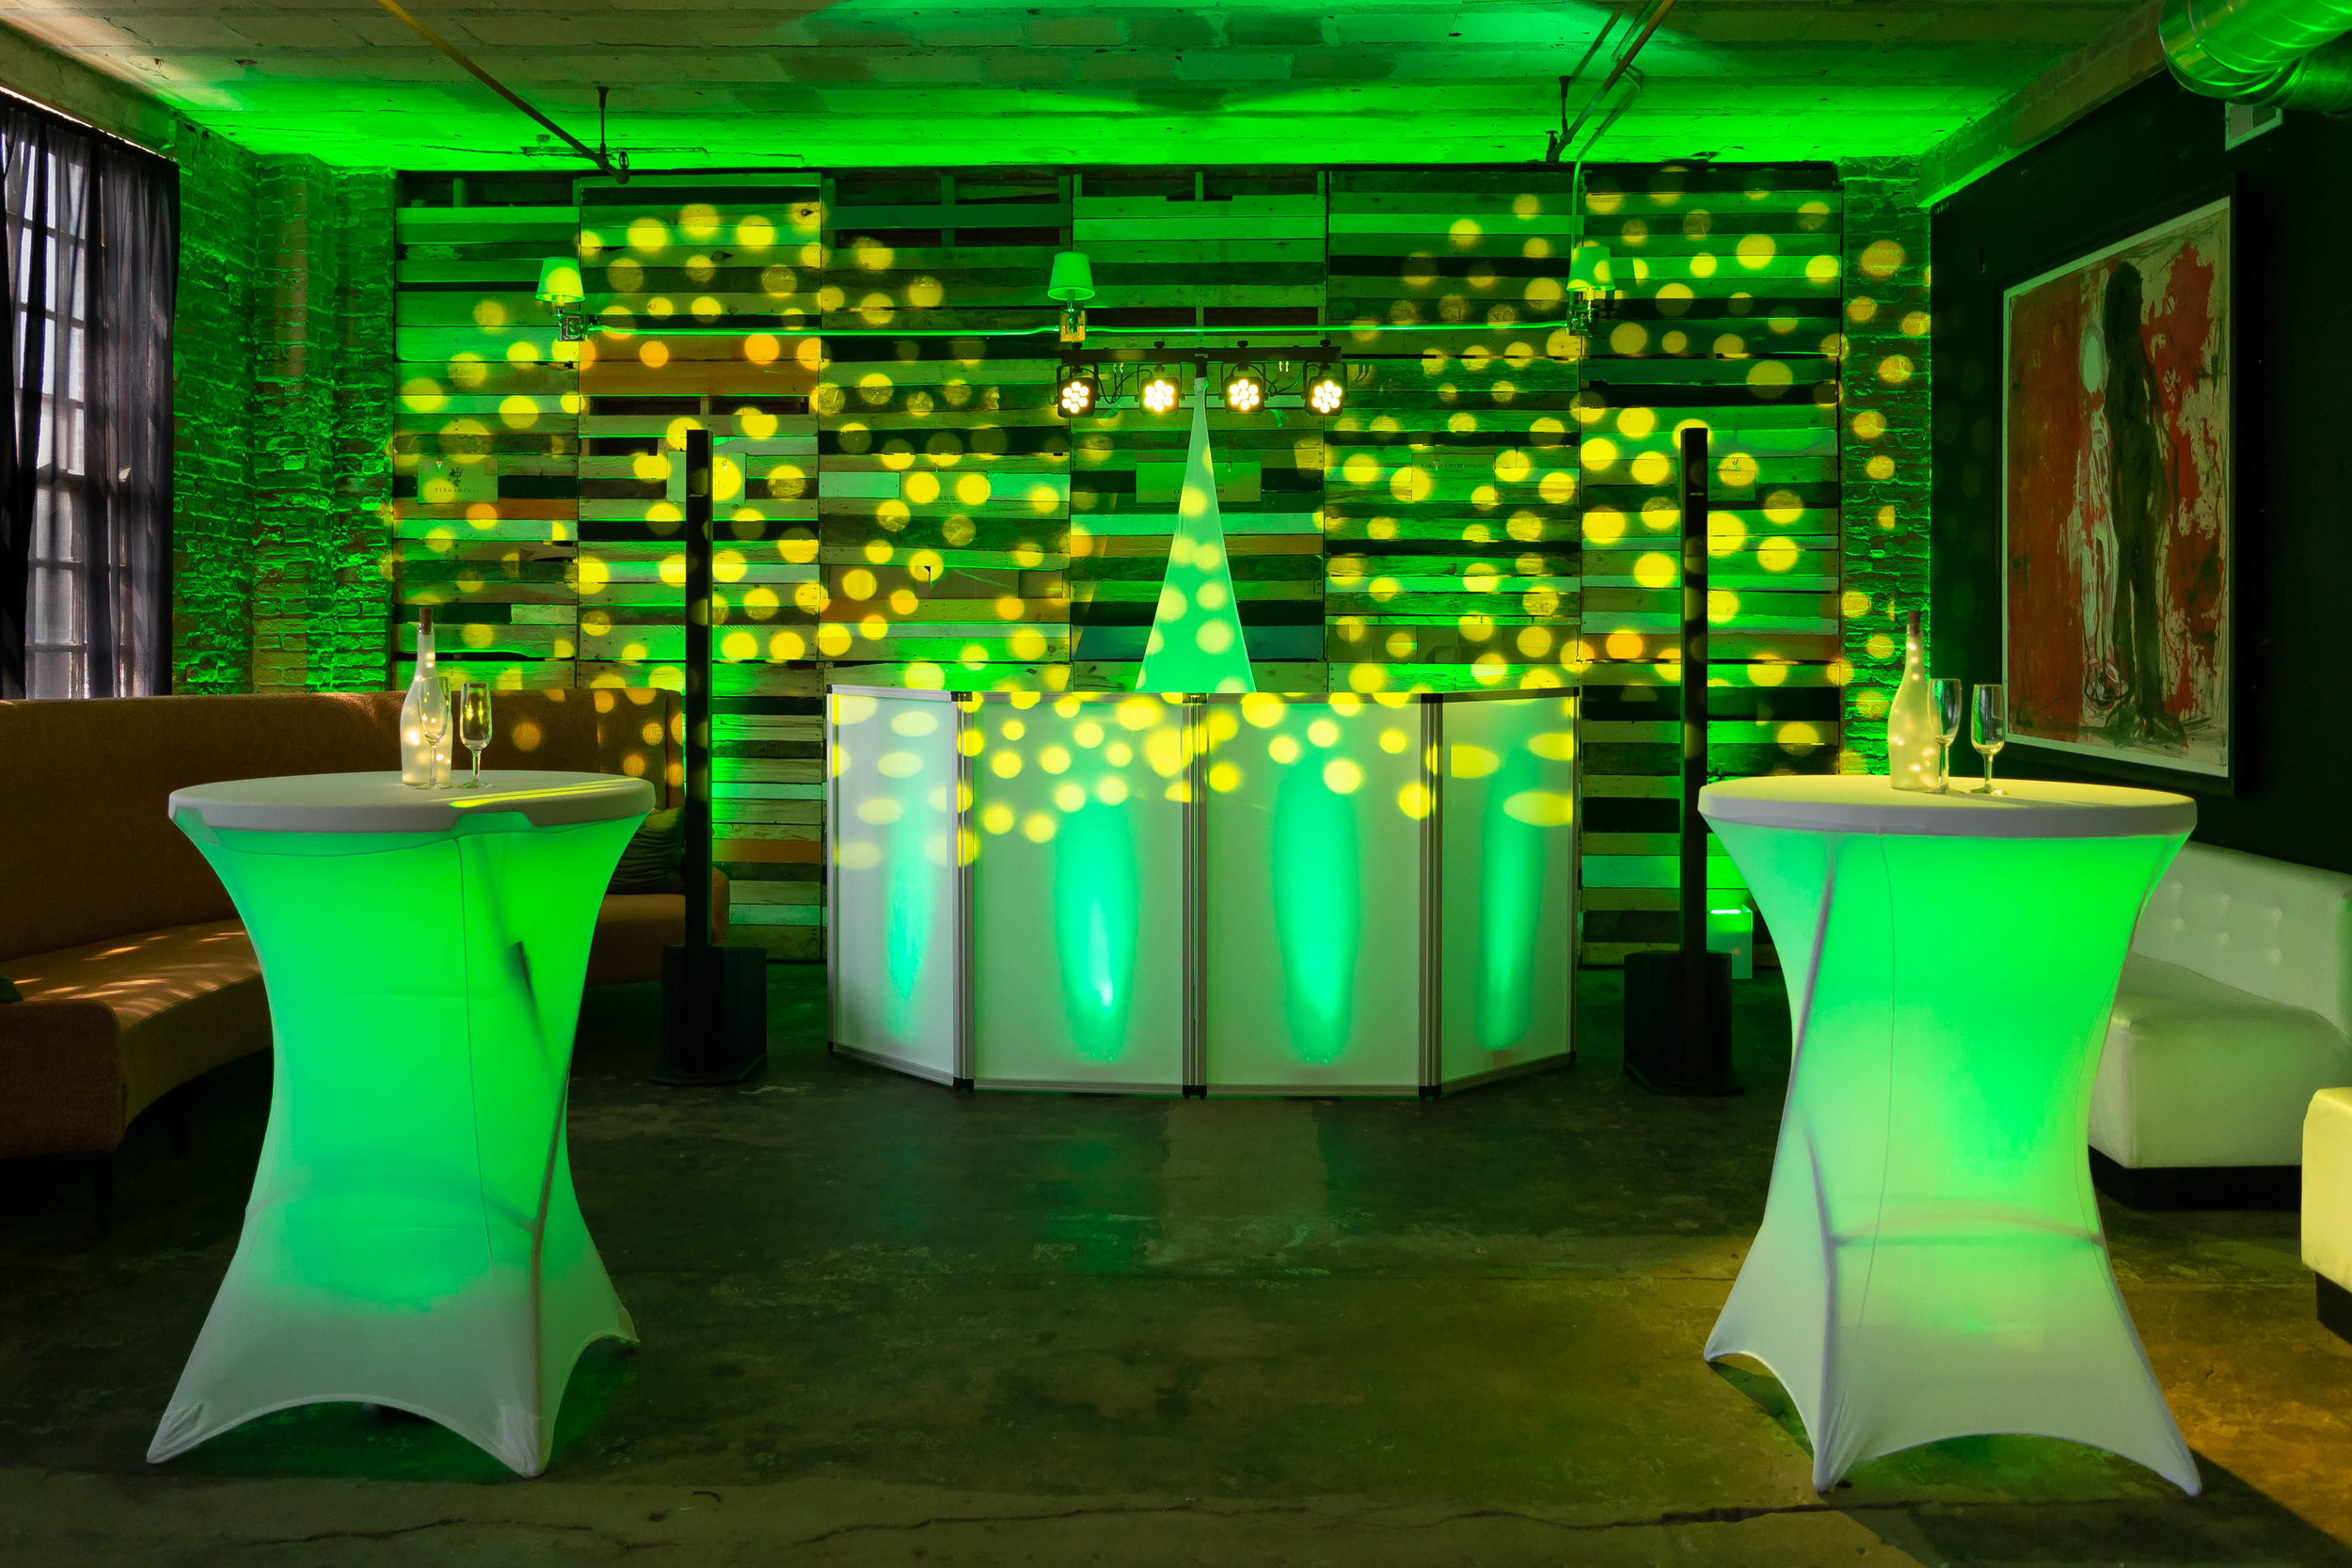 Uplight color wash with pinspot lights, LED cocktail tables, and gobos will transform any event.